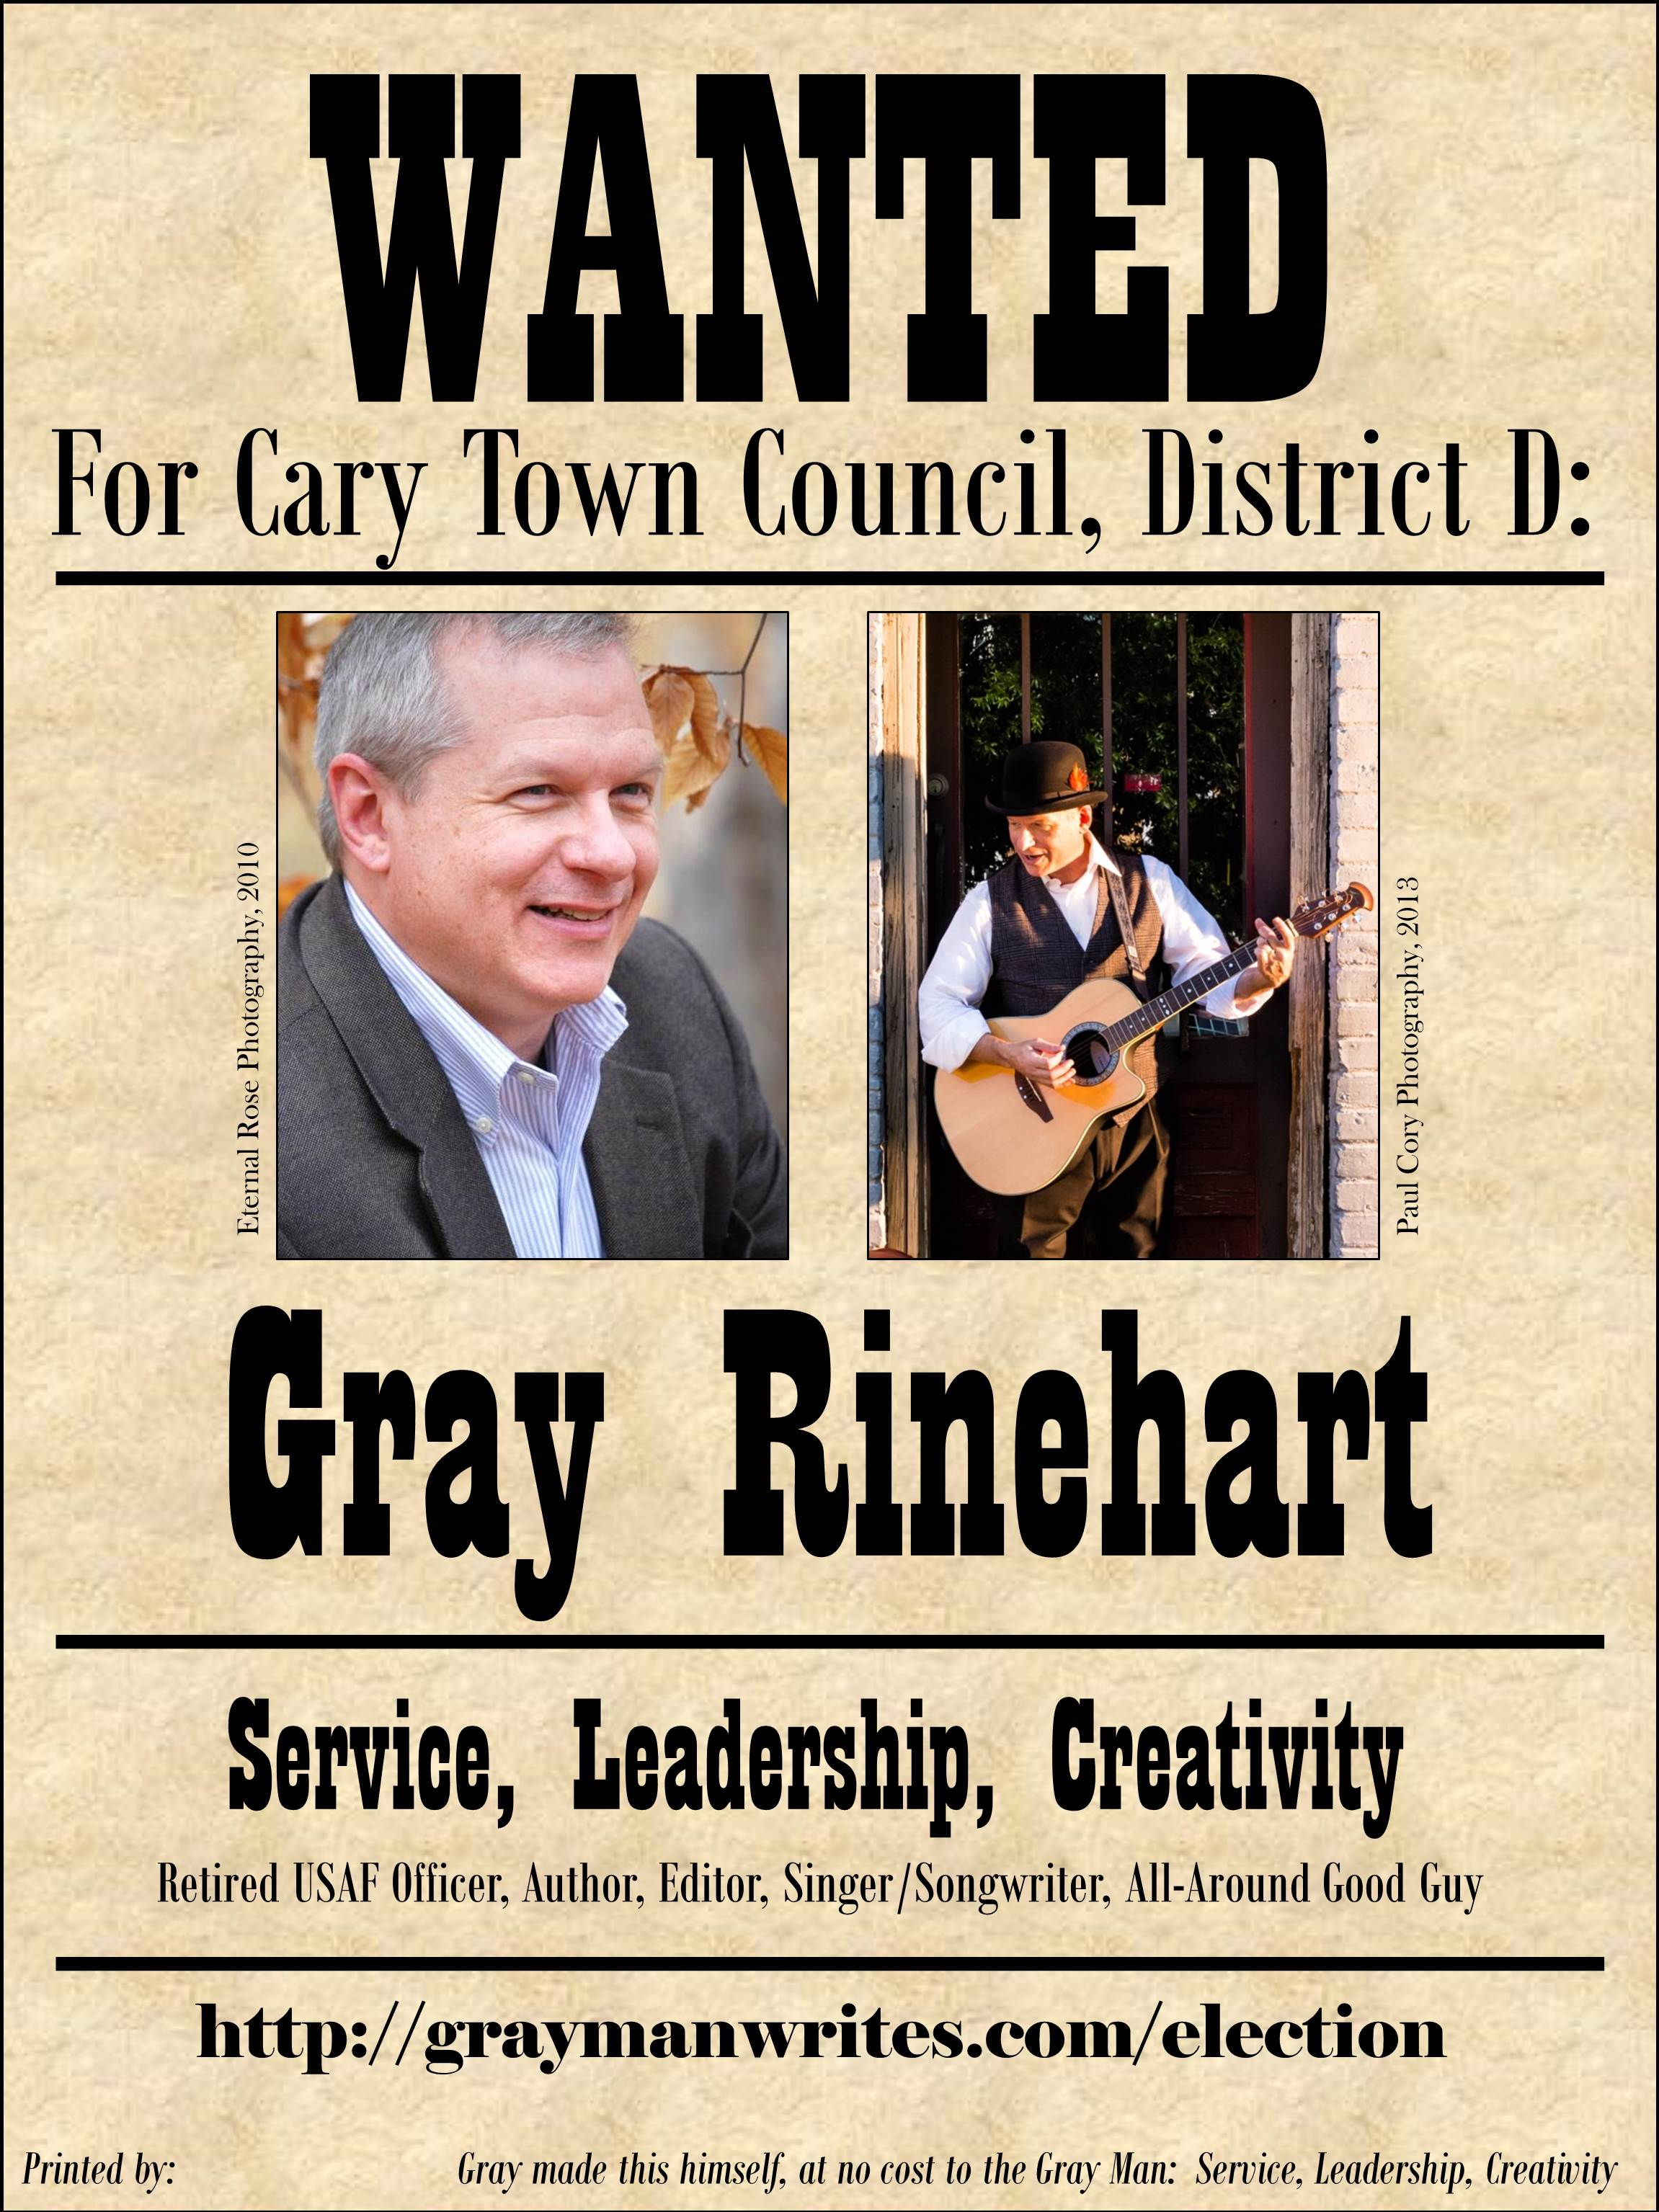 campaign chronicle 8 weeks to election collaborative social gray rinehart 2015 town council campaign flyer